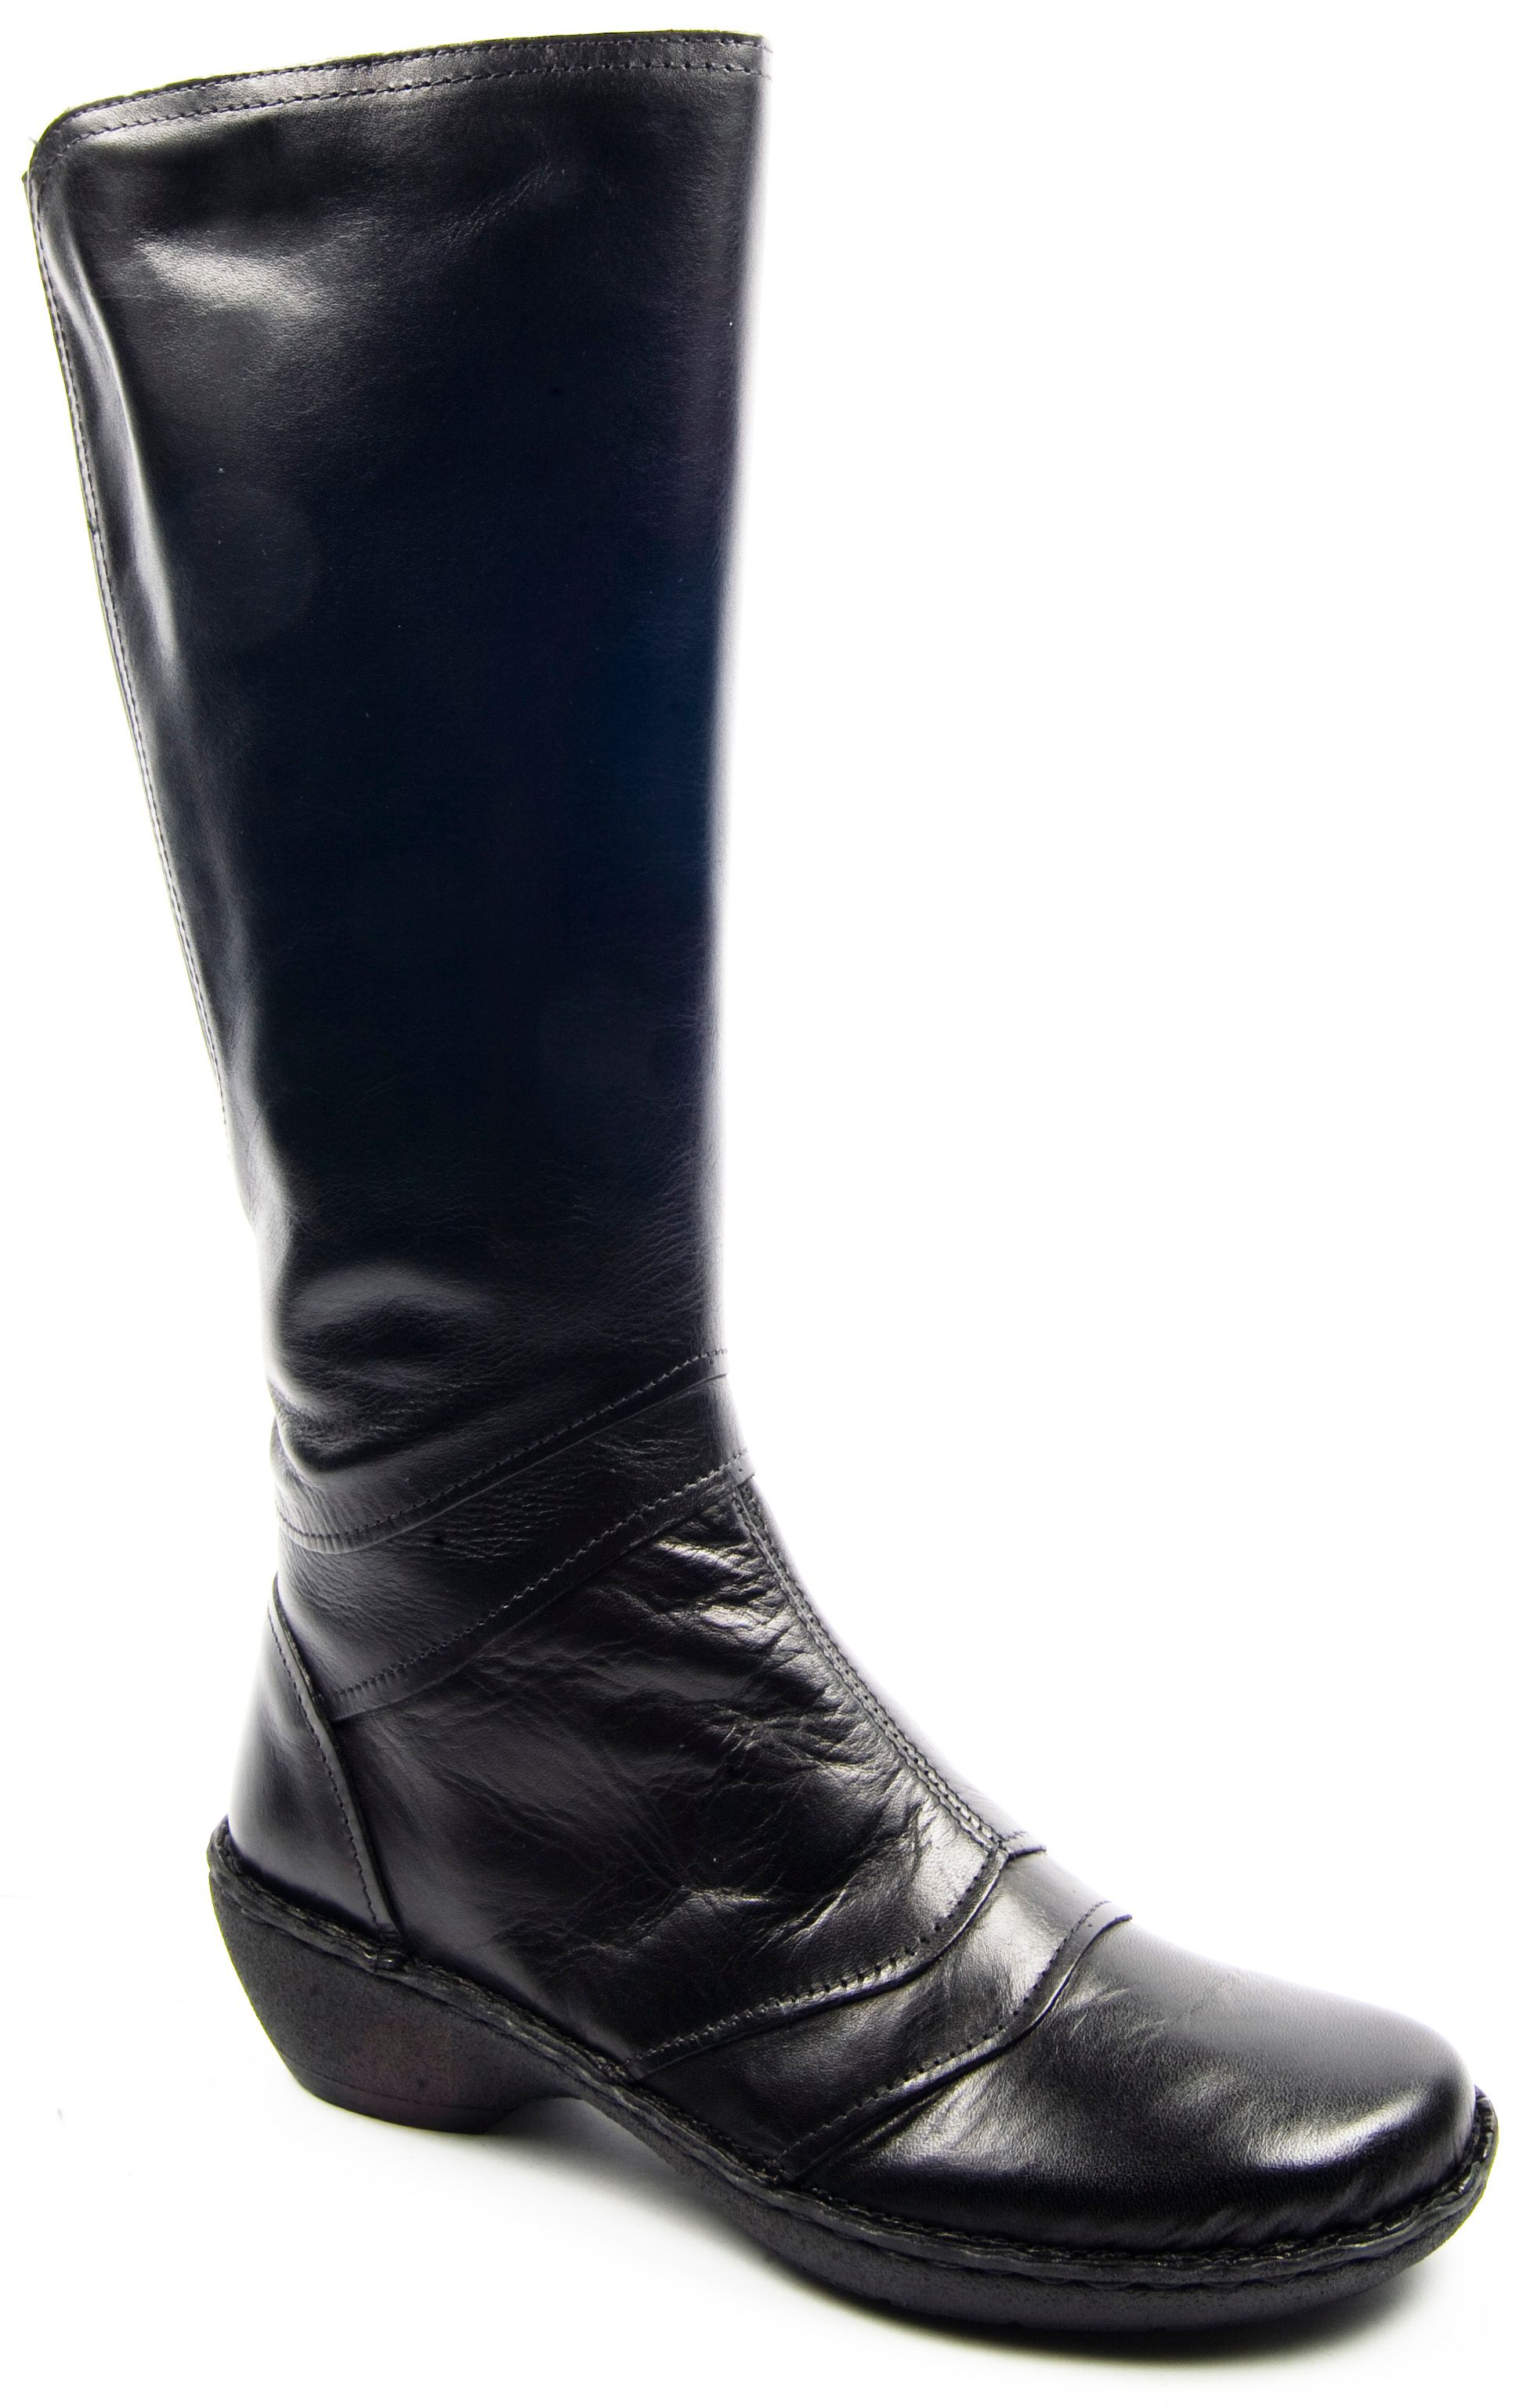 Stafford knee high boots